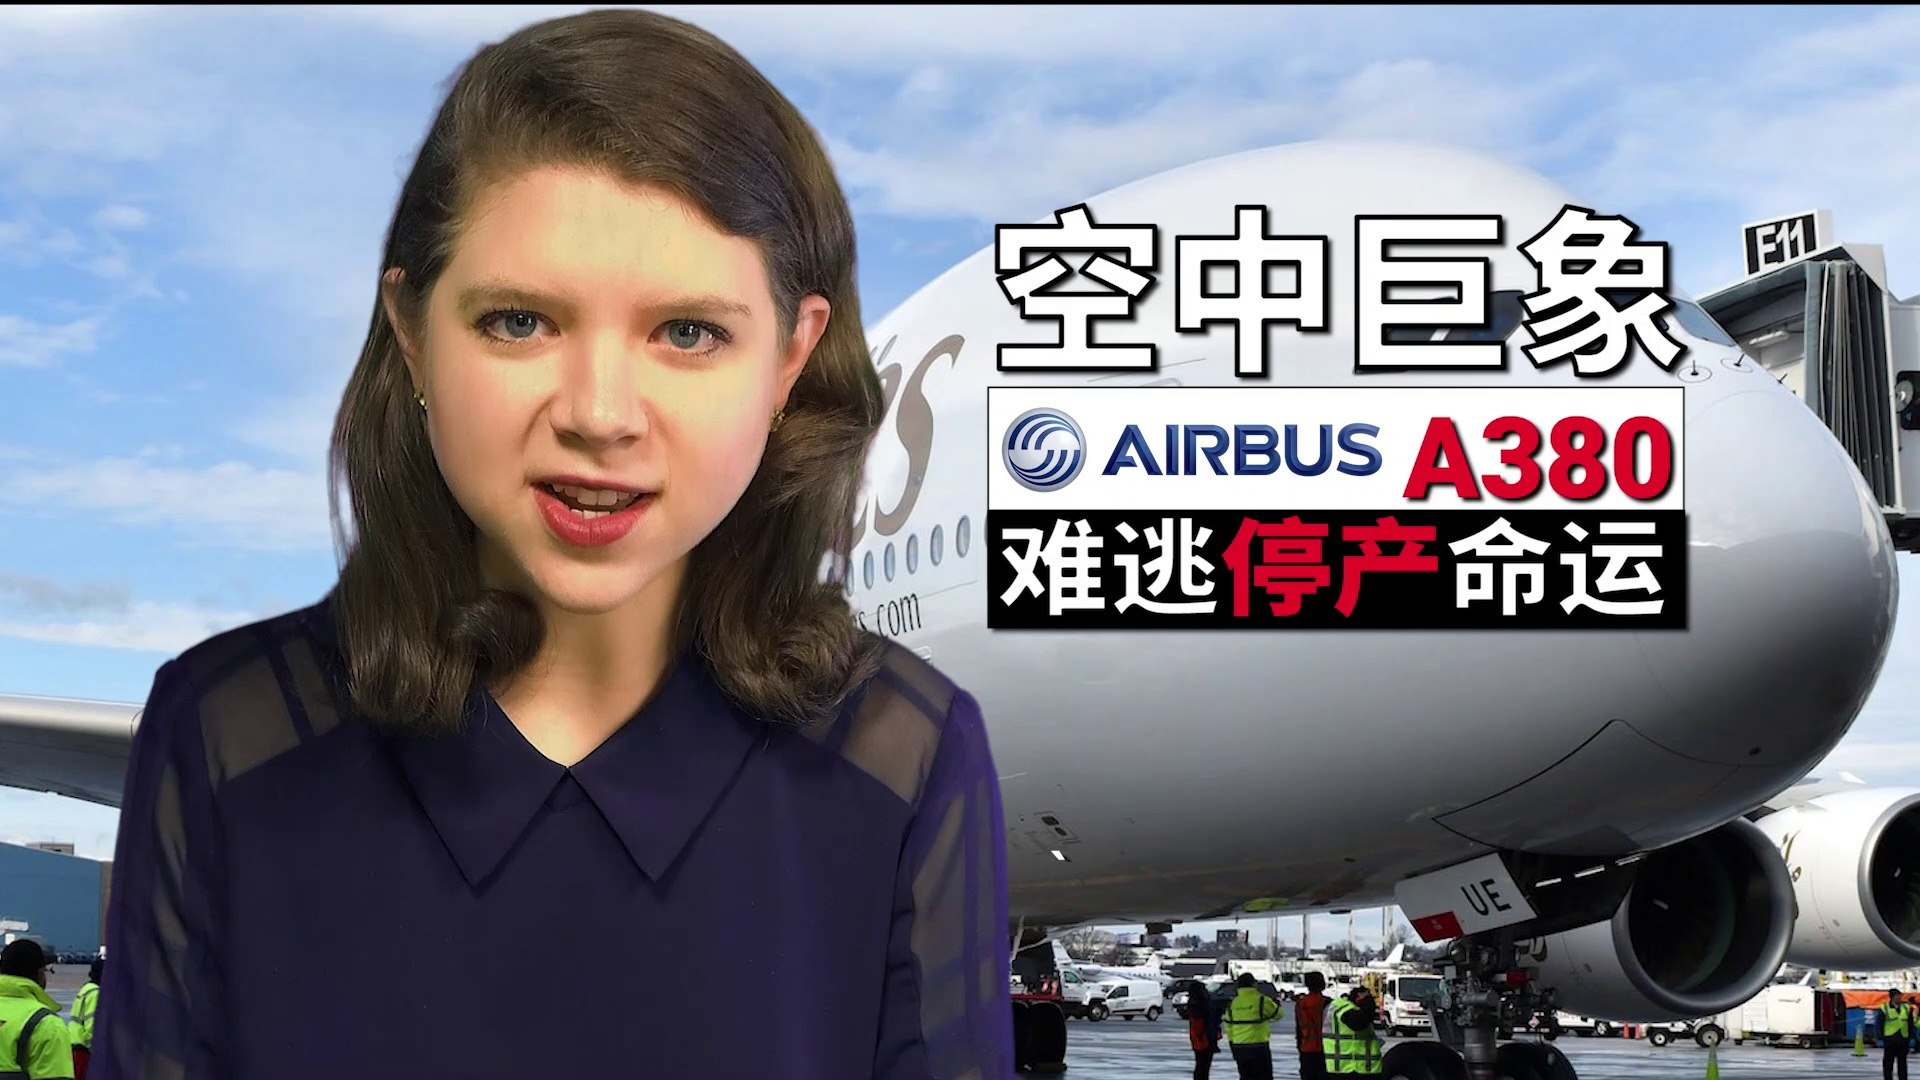 ChinesePod Today: Airbus A380 (simp. characters)